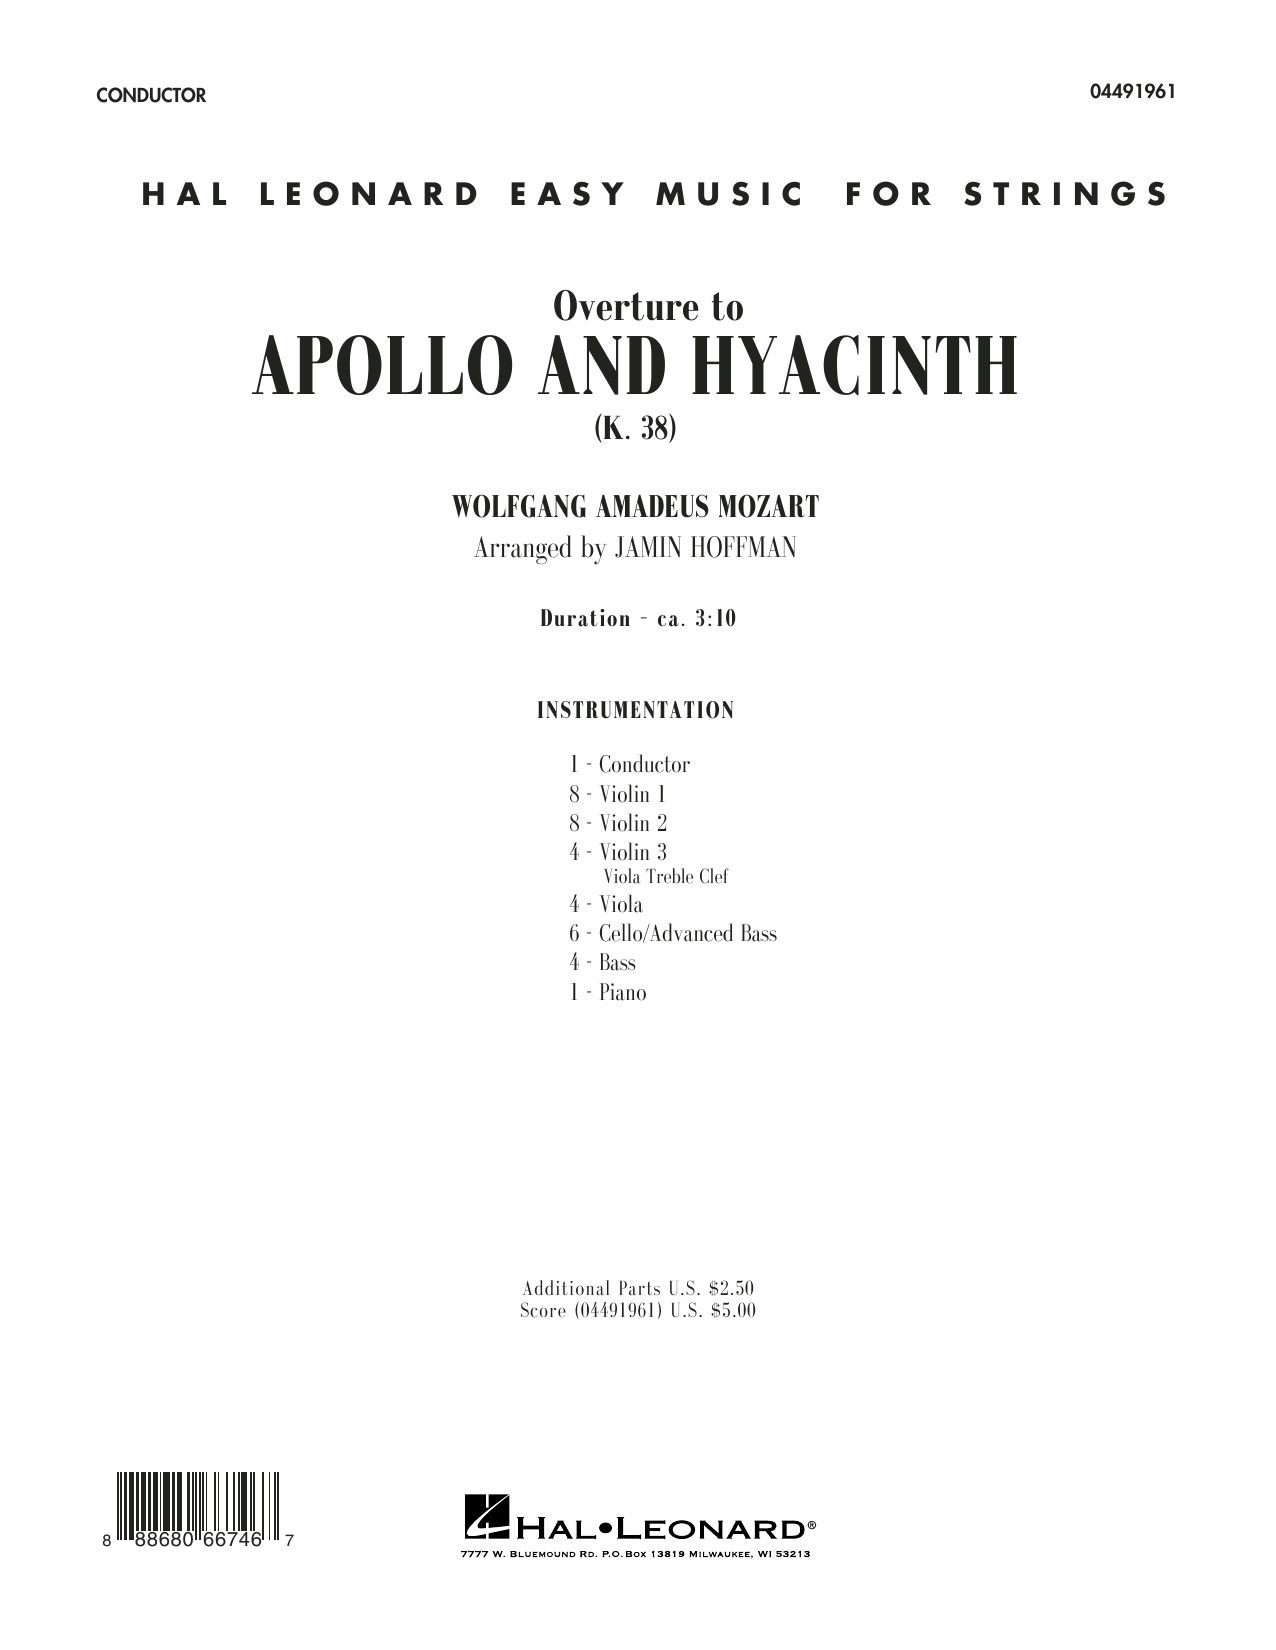 Jamin Hoffman Overture from Apollo and Hyacinth - Conductor Score (Full Score) sheet music notes and chords. Download Printable PDF.